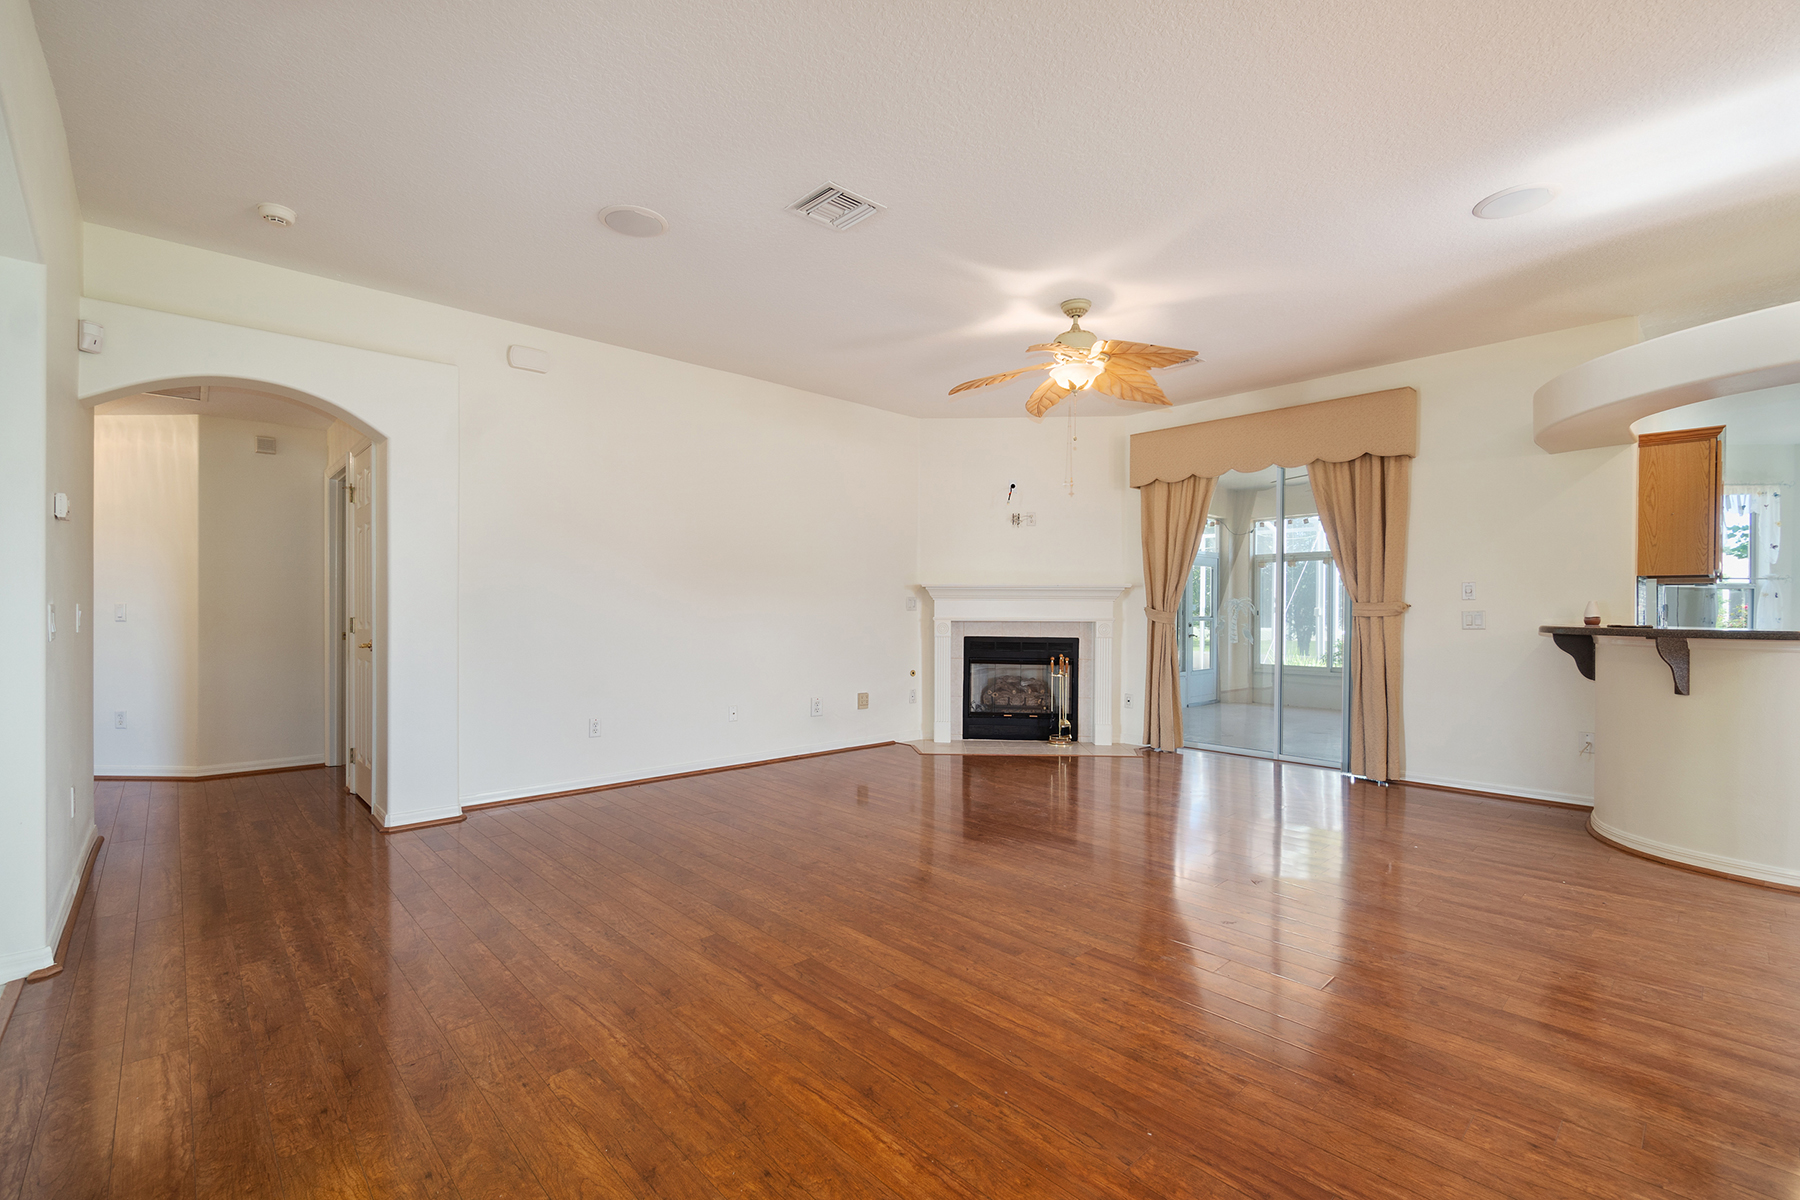 Additional photo for property listing at OCALA 15675 Sw 11th Court Rd, Ocala, Florida 34473 United States